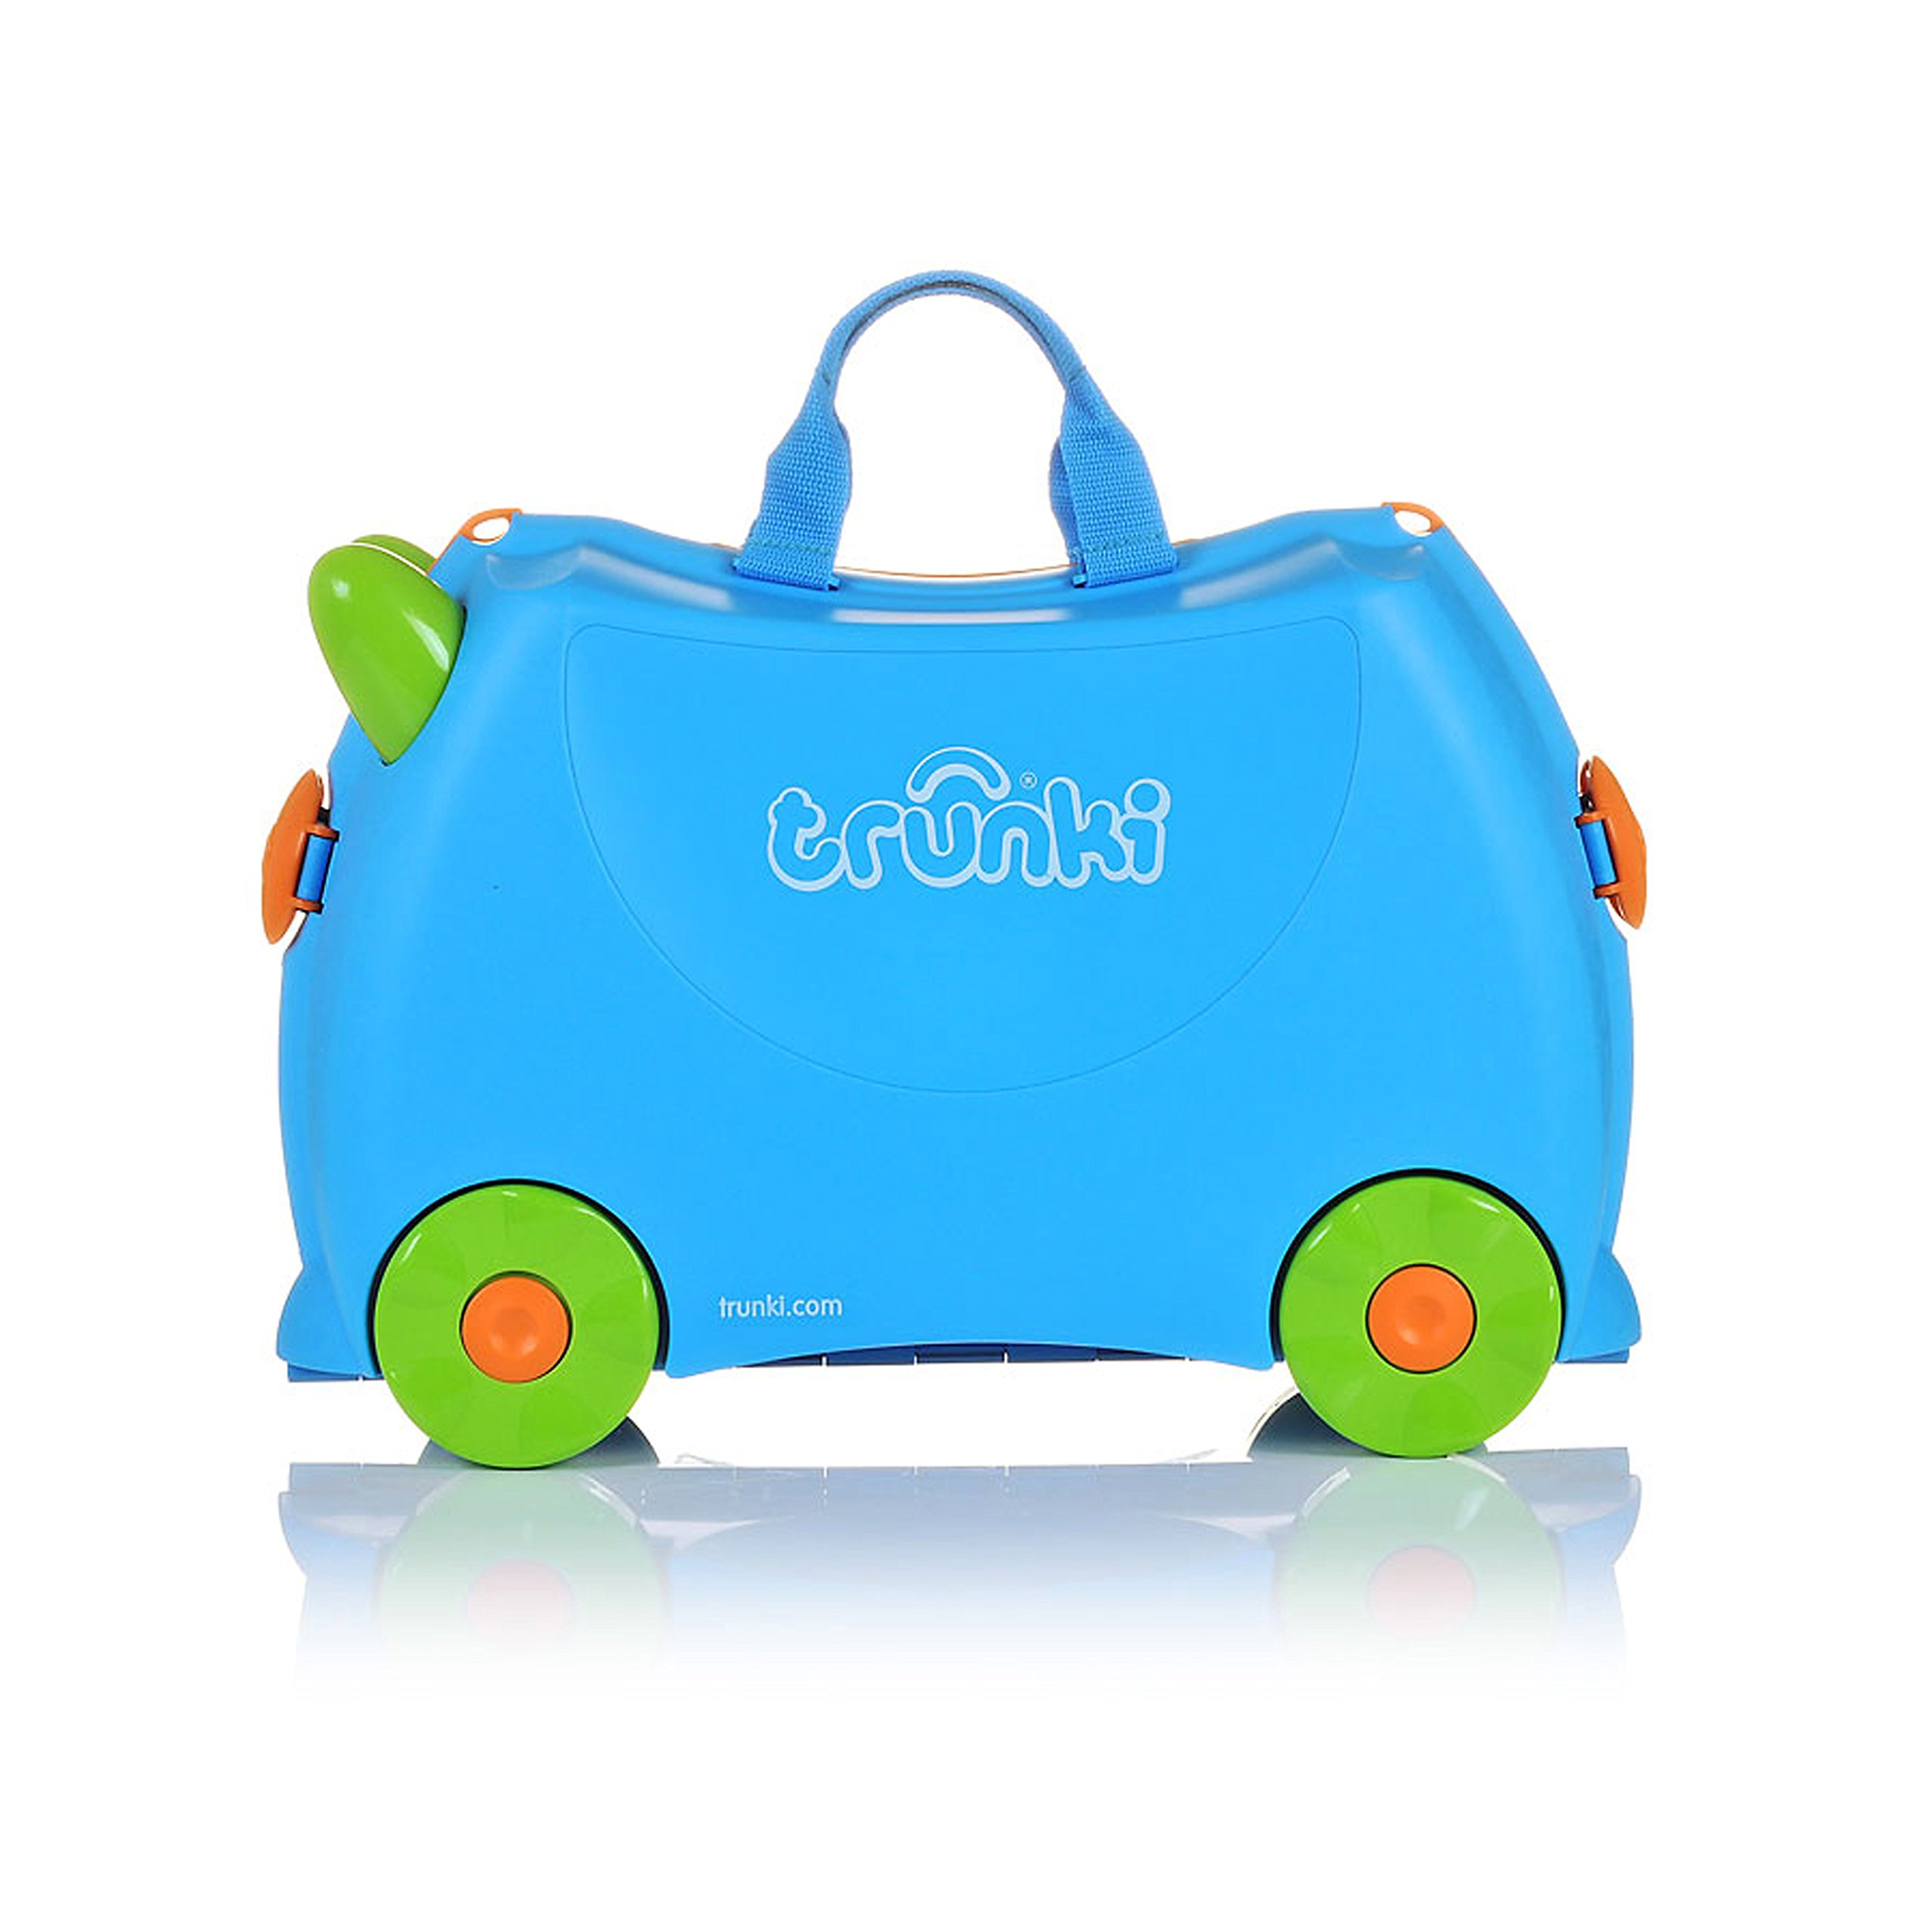 Trunki Original Kids Ride-On Suitcase and Carry-On Luggage - Terrance (Blue) by Trunki (Image #3)